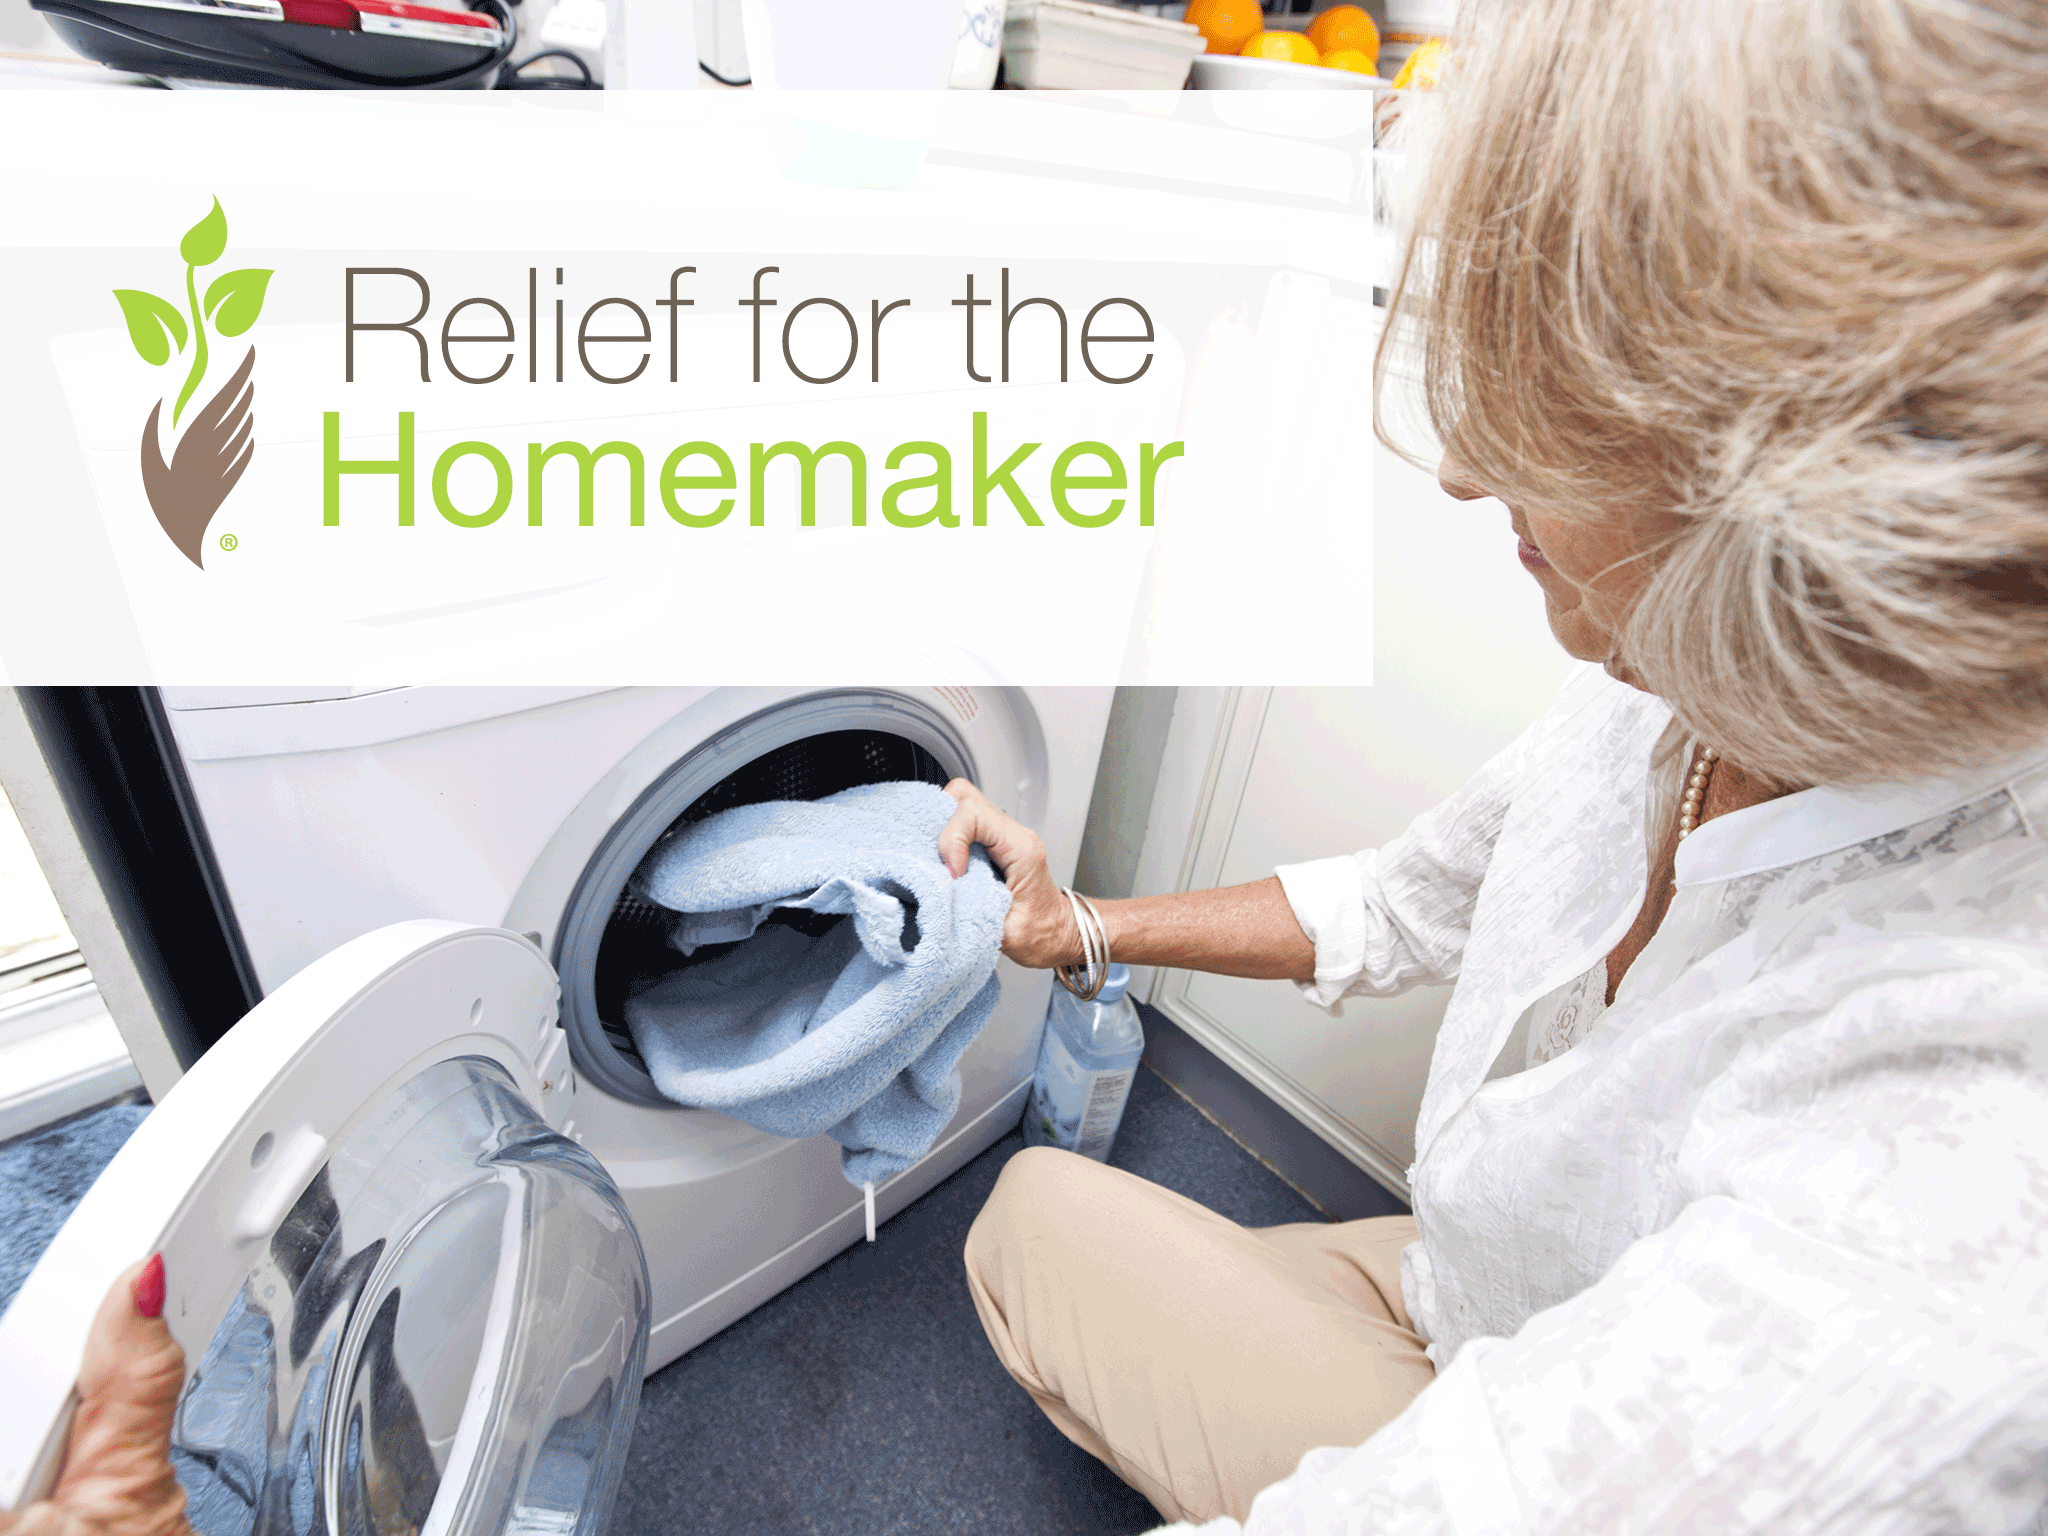 Relief for the Homemaker